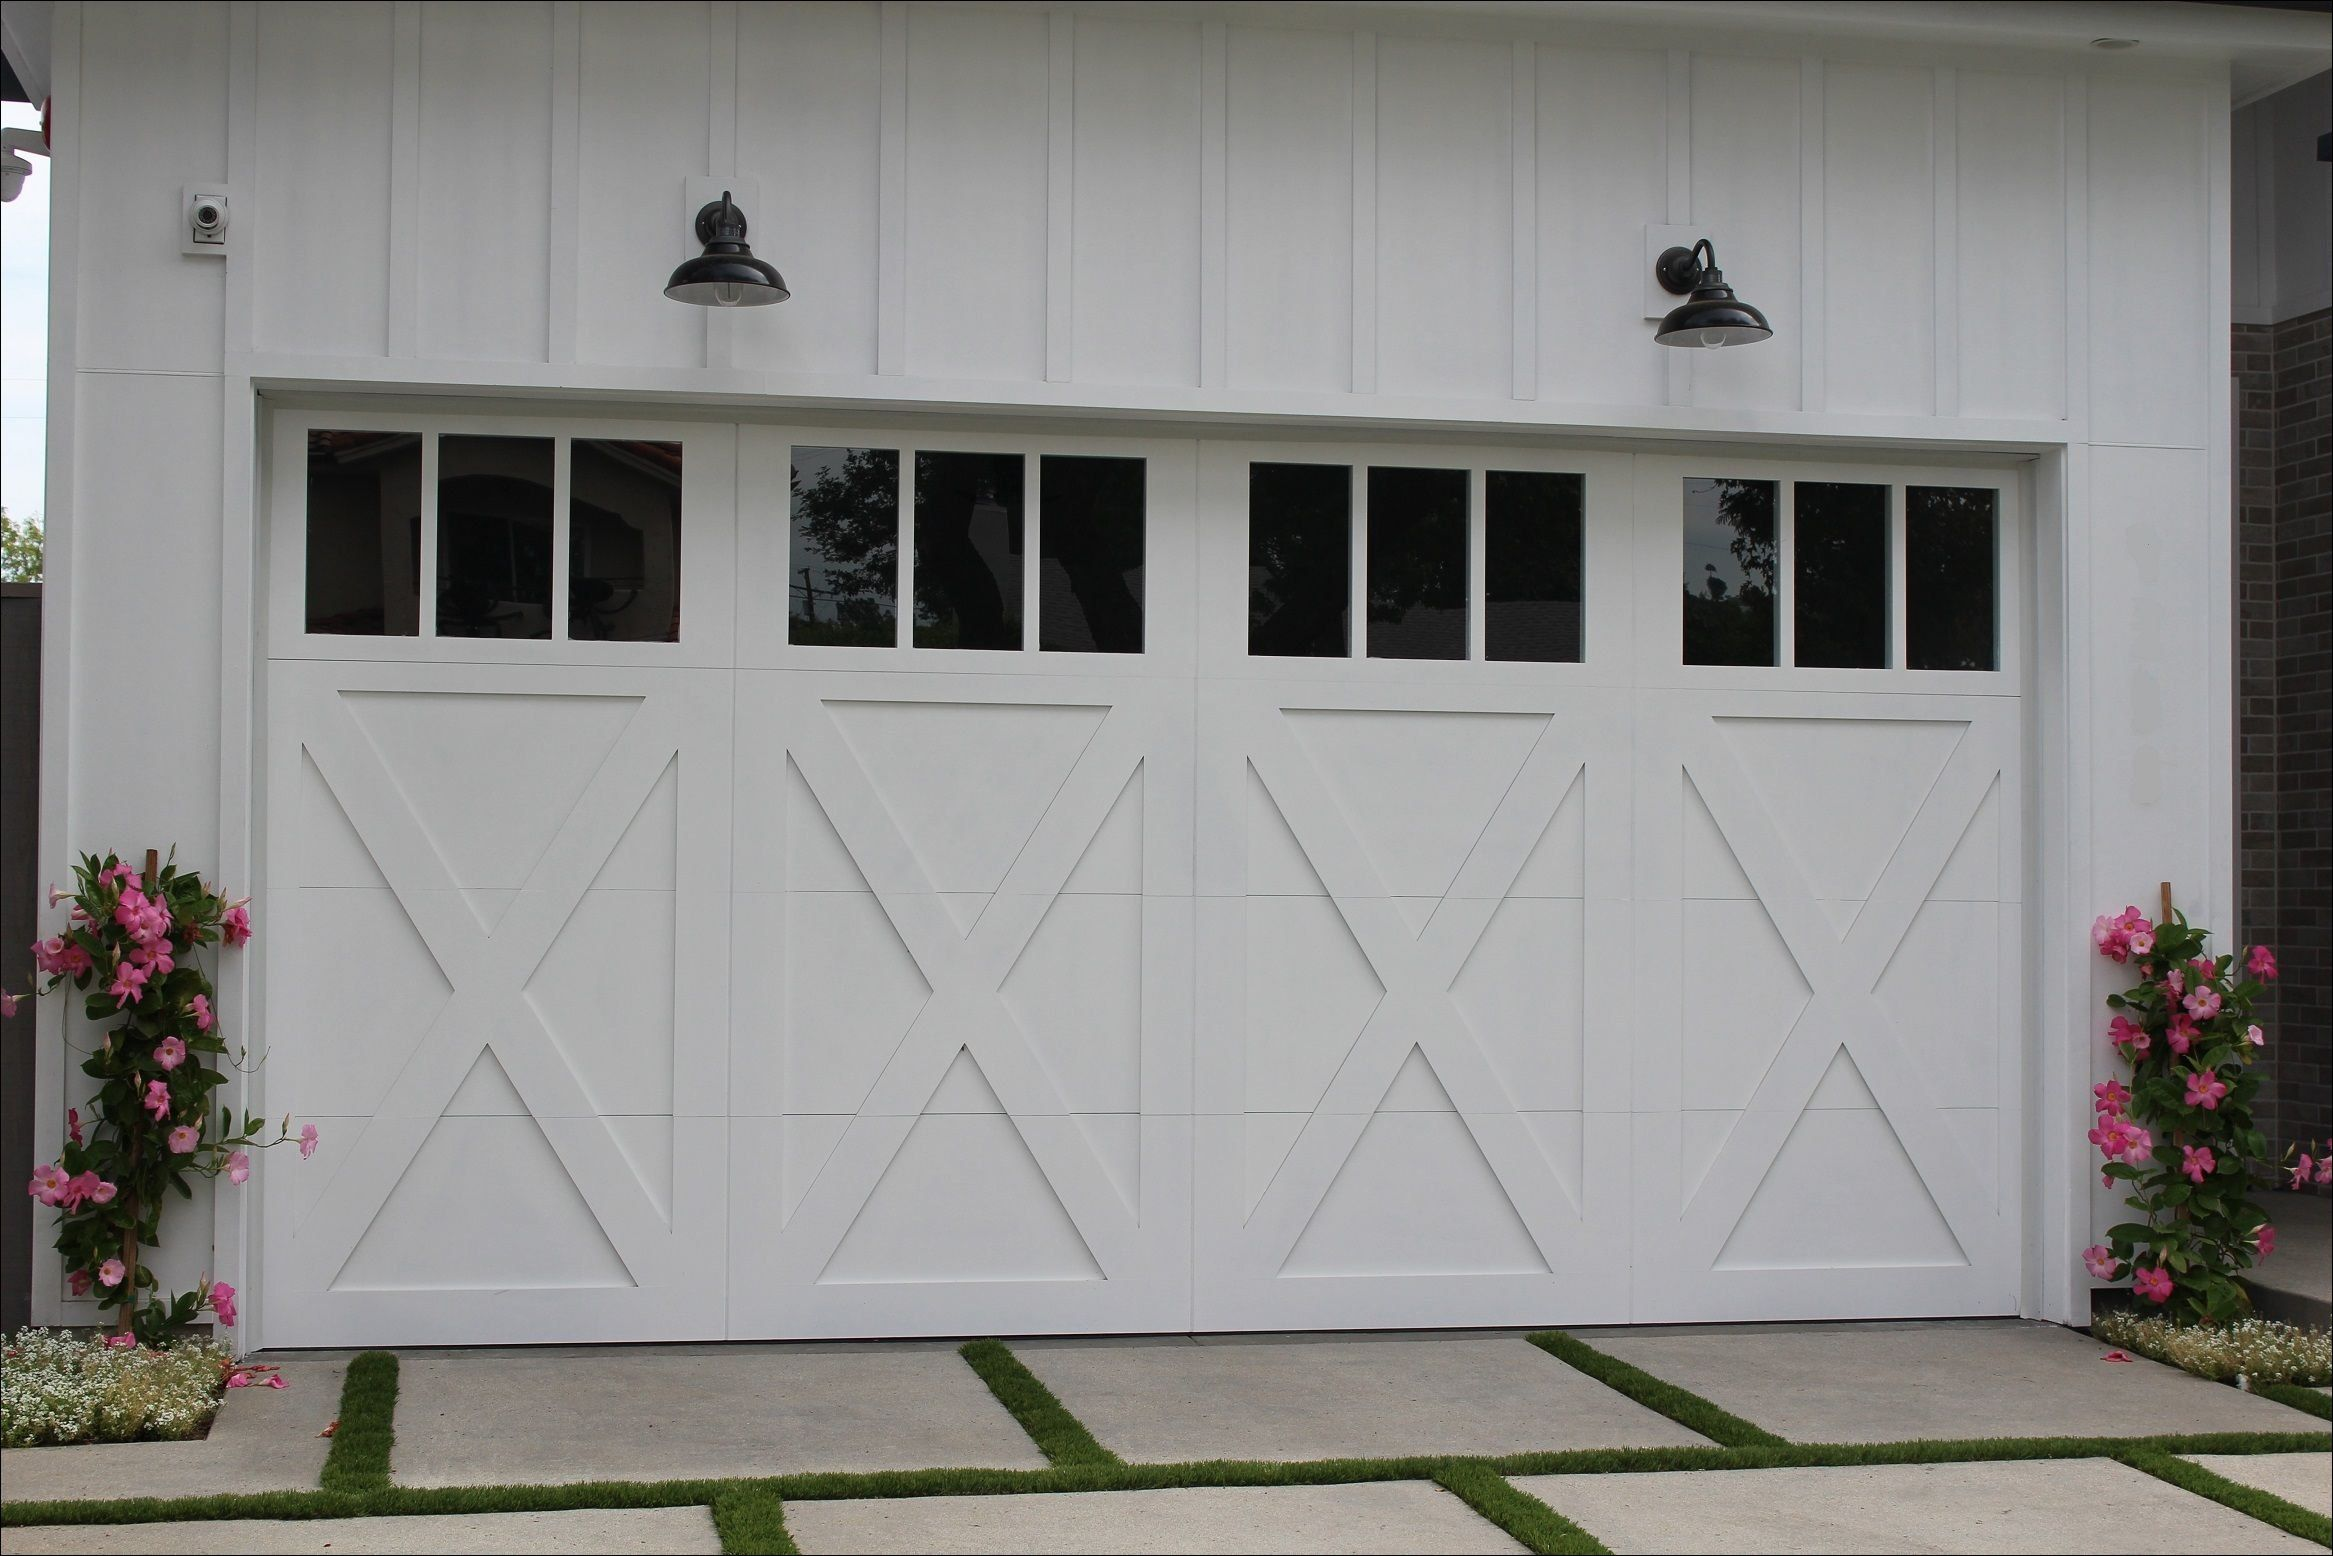 10 X 9 Garage Door Fresh Modern Farmhouse Lincthelendesign Carriage Garage Doors Garage Doors Double Garage Door